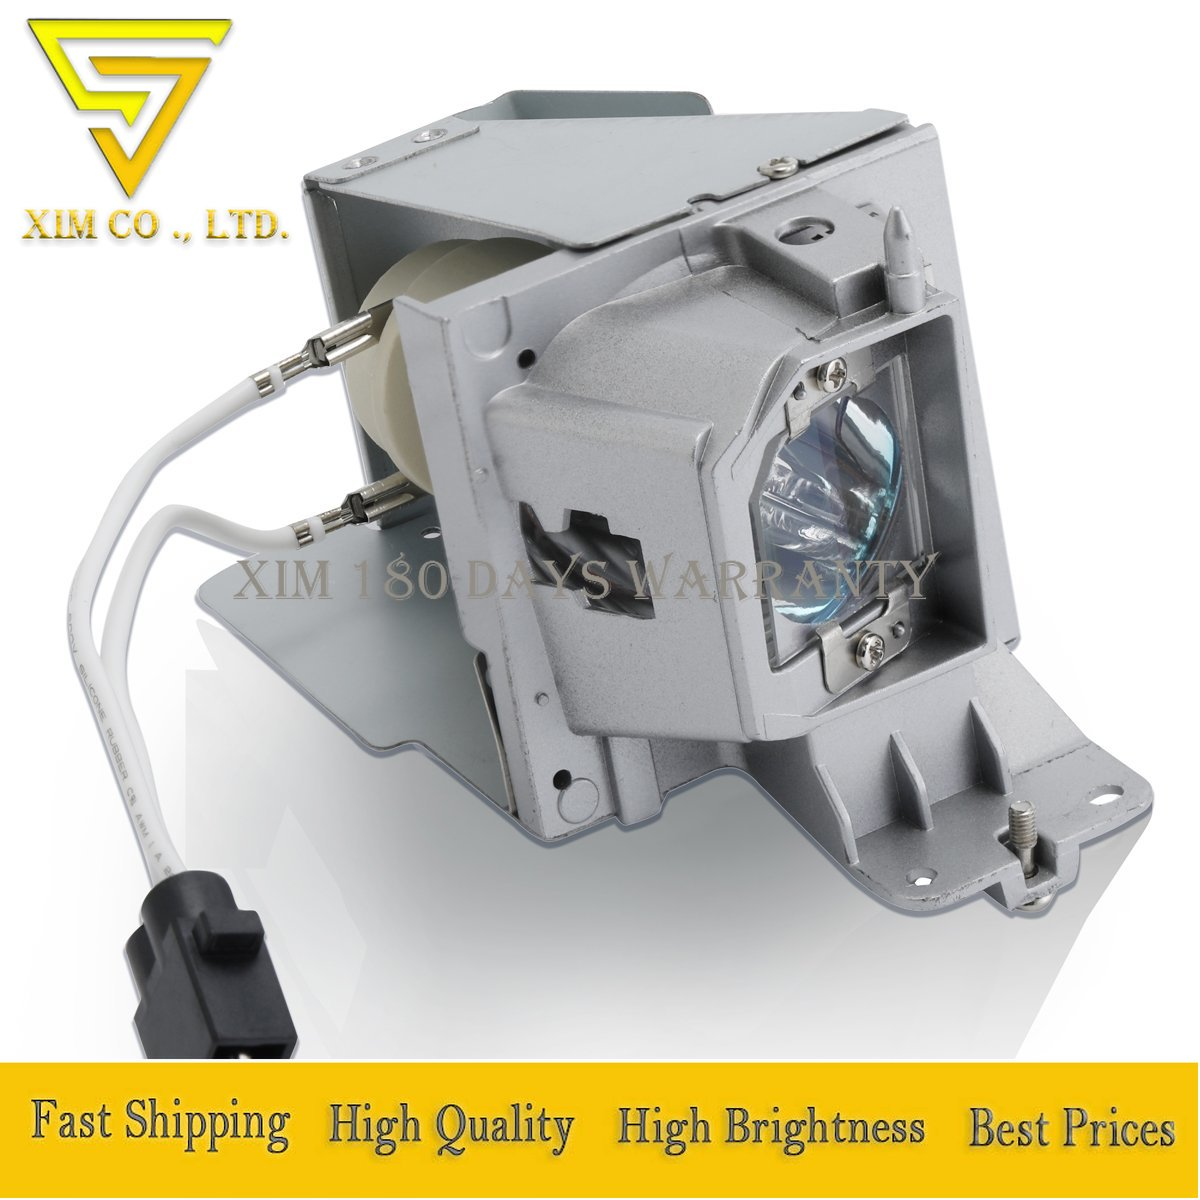 BL FU190E SP 8VC01GC01 Replacement Projector Lamp Module for OPTOMA HD25E HD131XW HD131Xe VDHDNUE HM6301 with housing in Projector Bulbs from Consumer Electronics